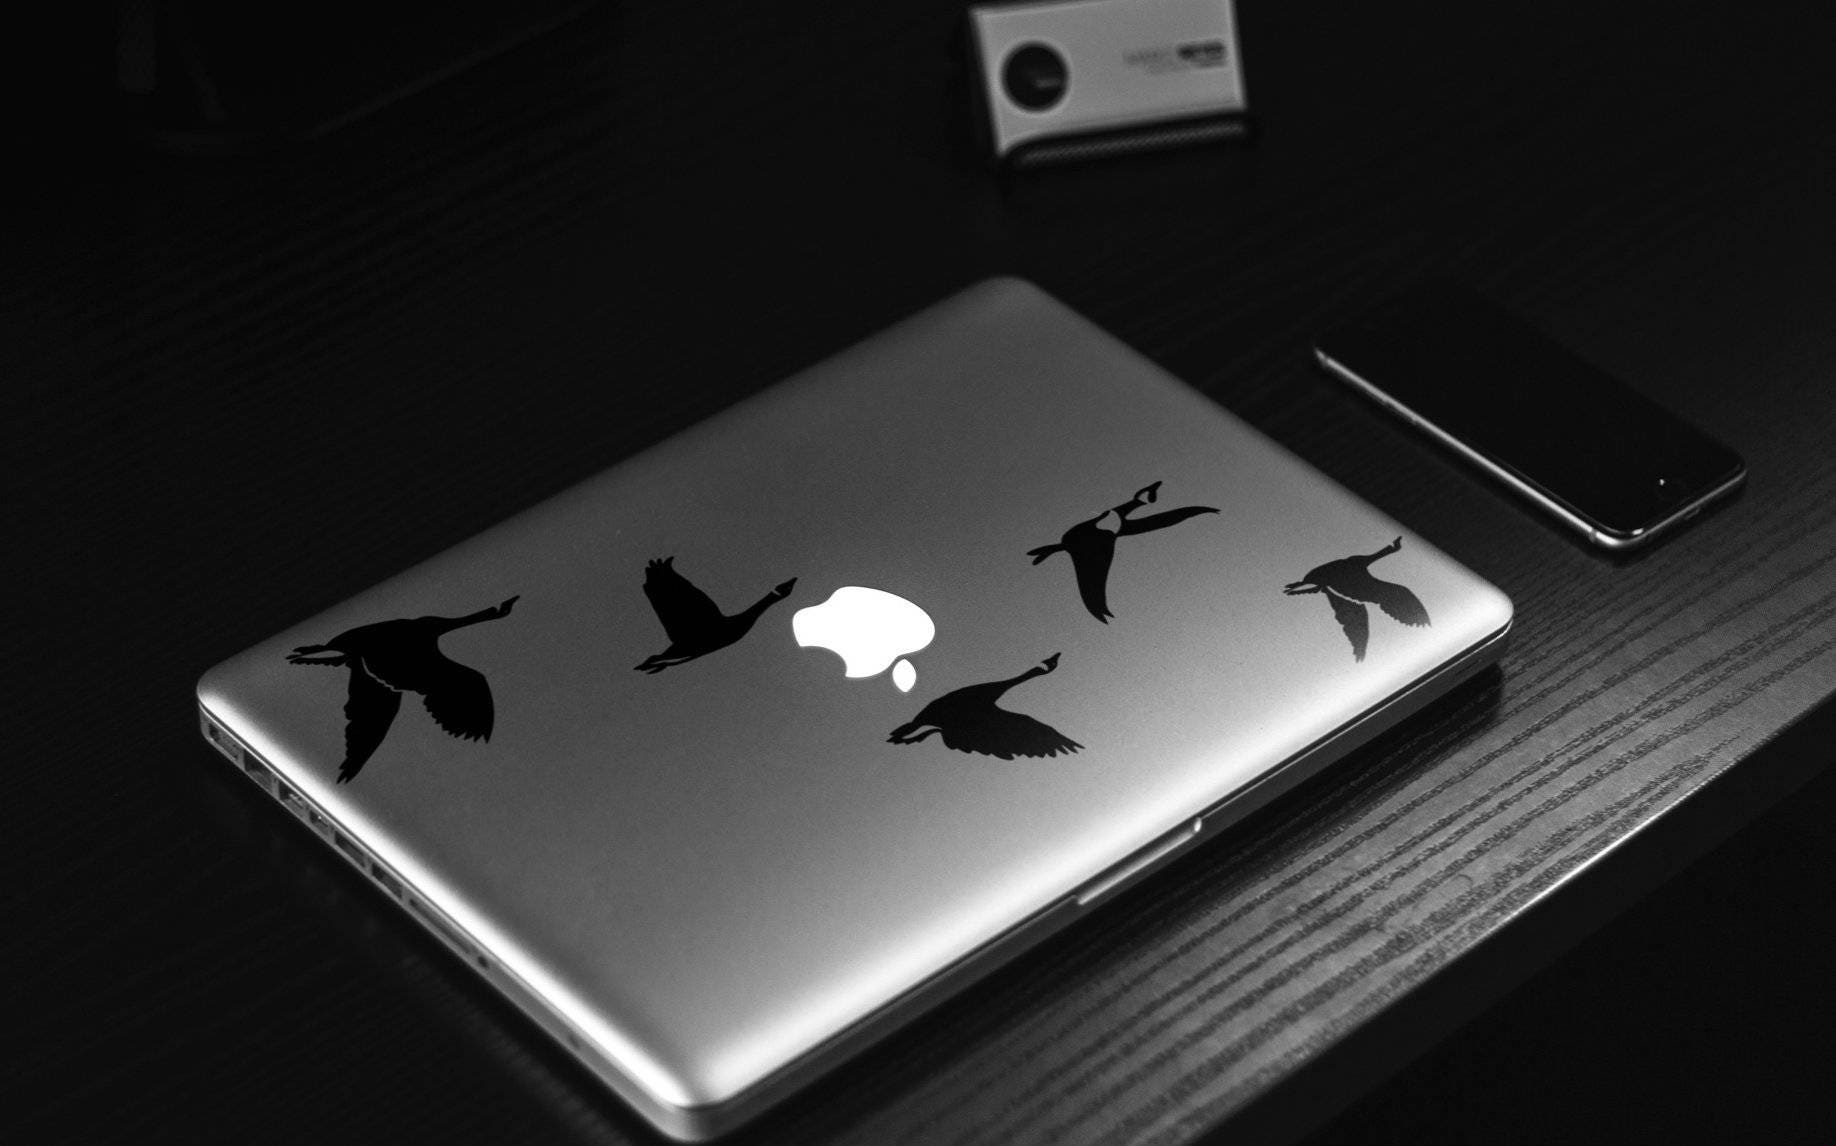 Flying Geese FlockDecal Sticker, Laptop Skin, mac, birds